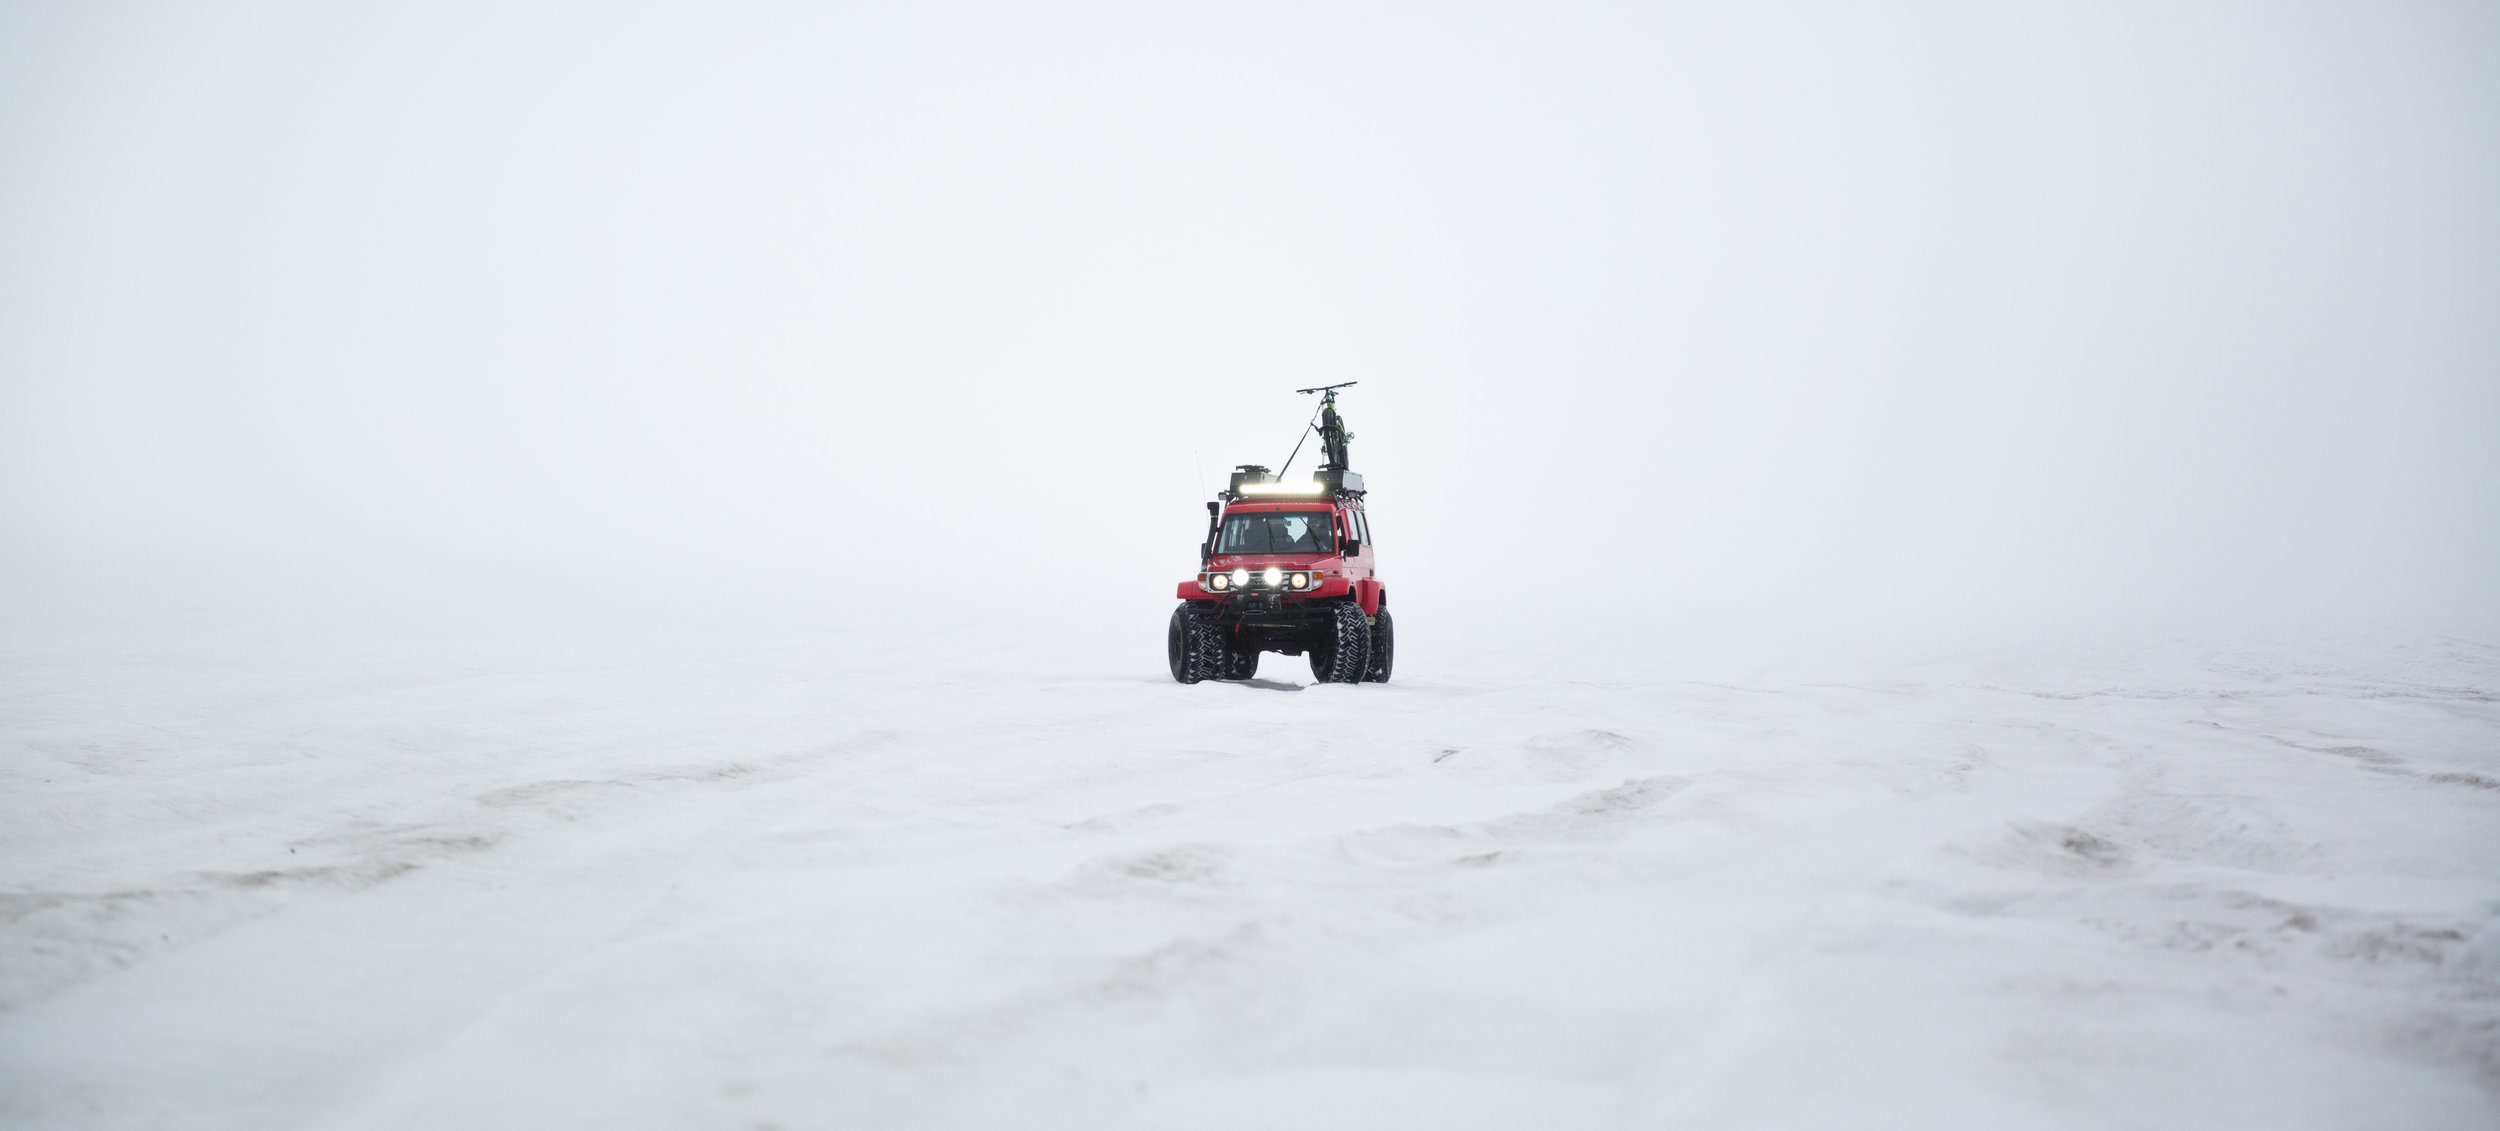 Rent_a_Land_Rover_in_Iceland_with_Geysir_-2.jpg